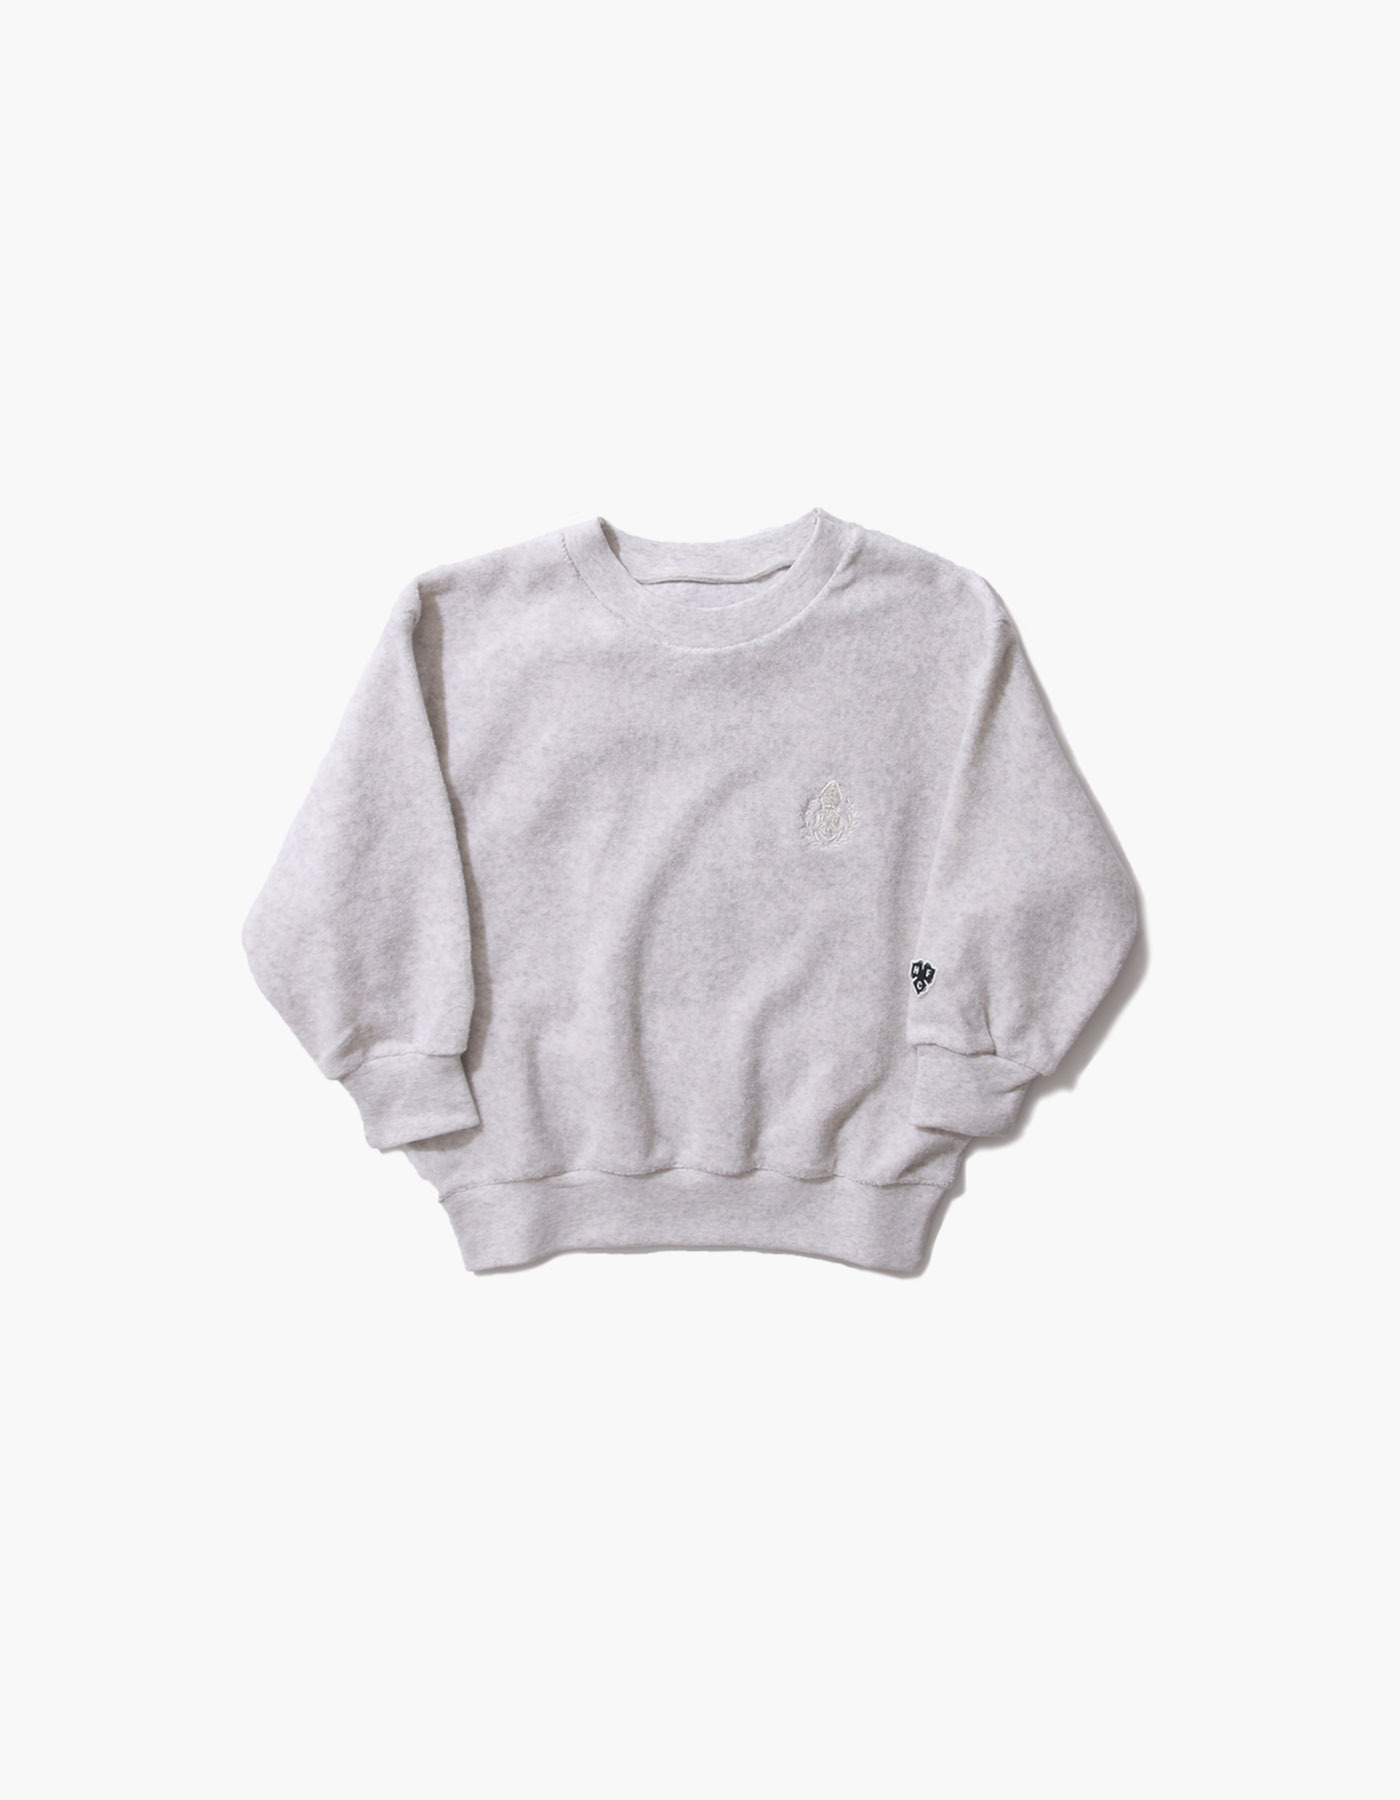 HFC CREST KIDS TOWEL CREWNECK / M.GREY(1%)